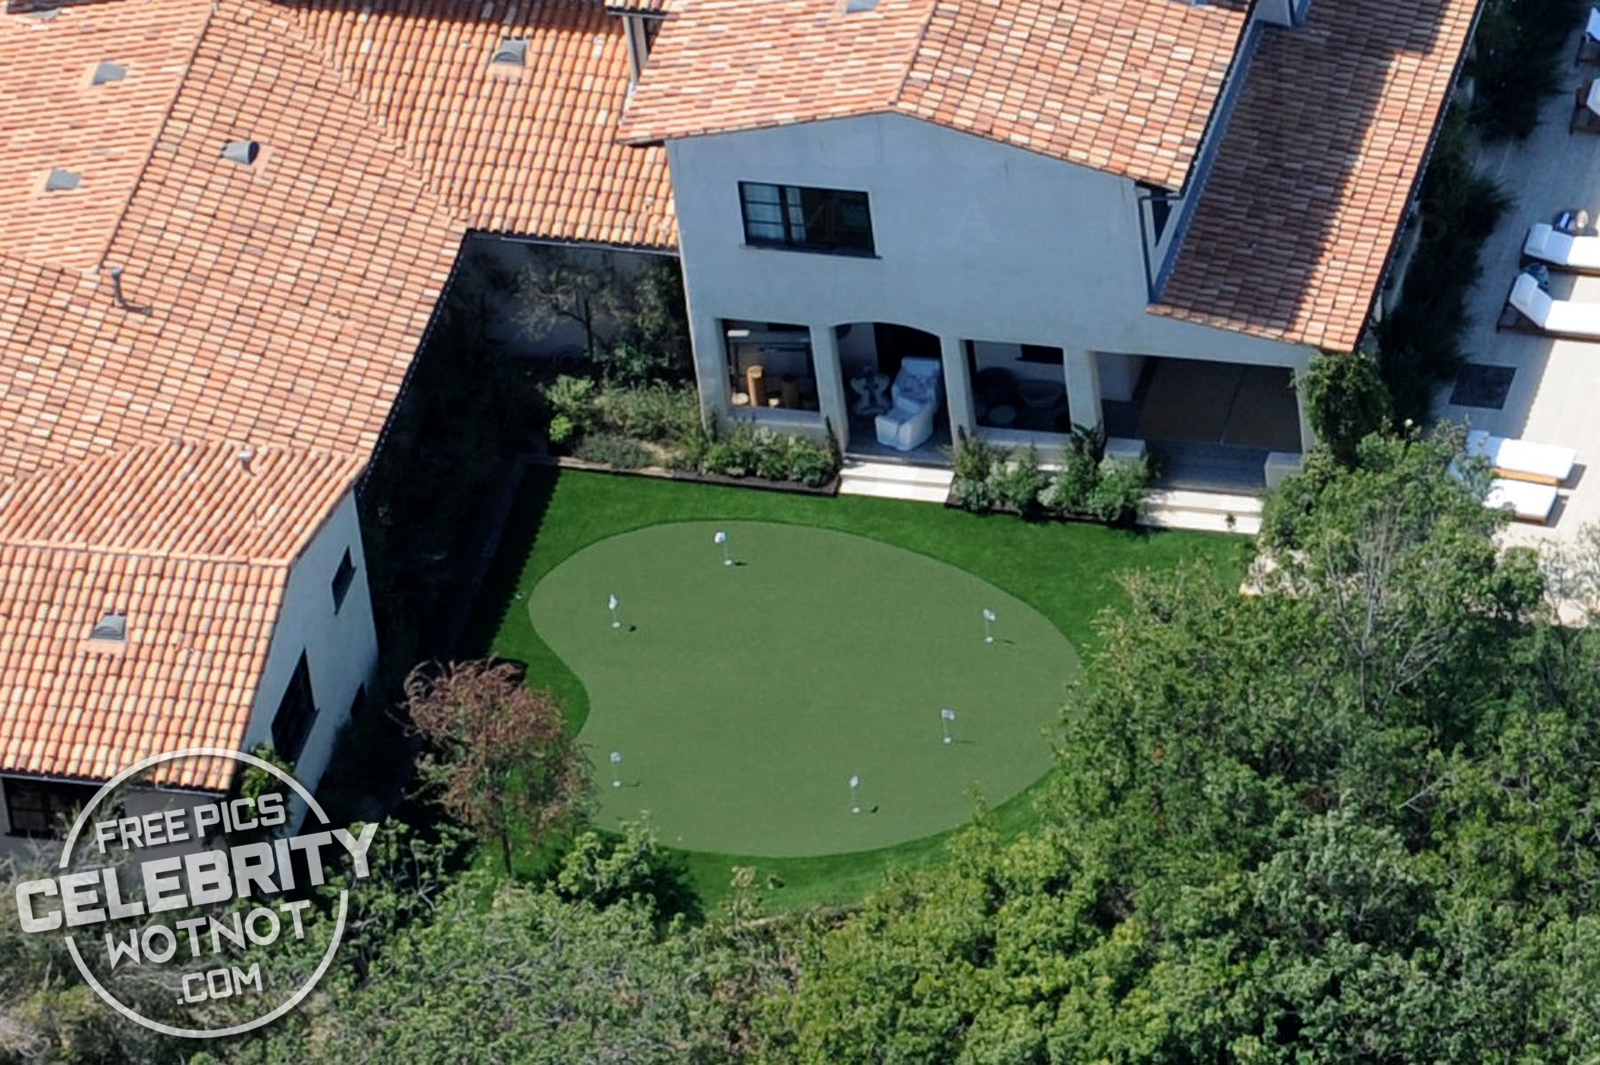 Justin Timberlake Has A Blue Basketball Court At His Hollywood Home Celebrity Wotnot